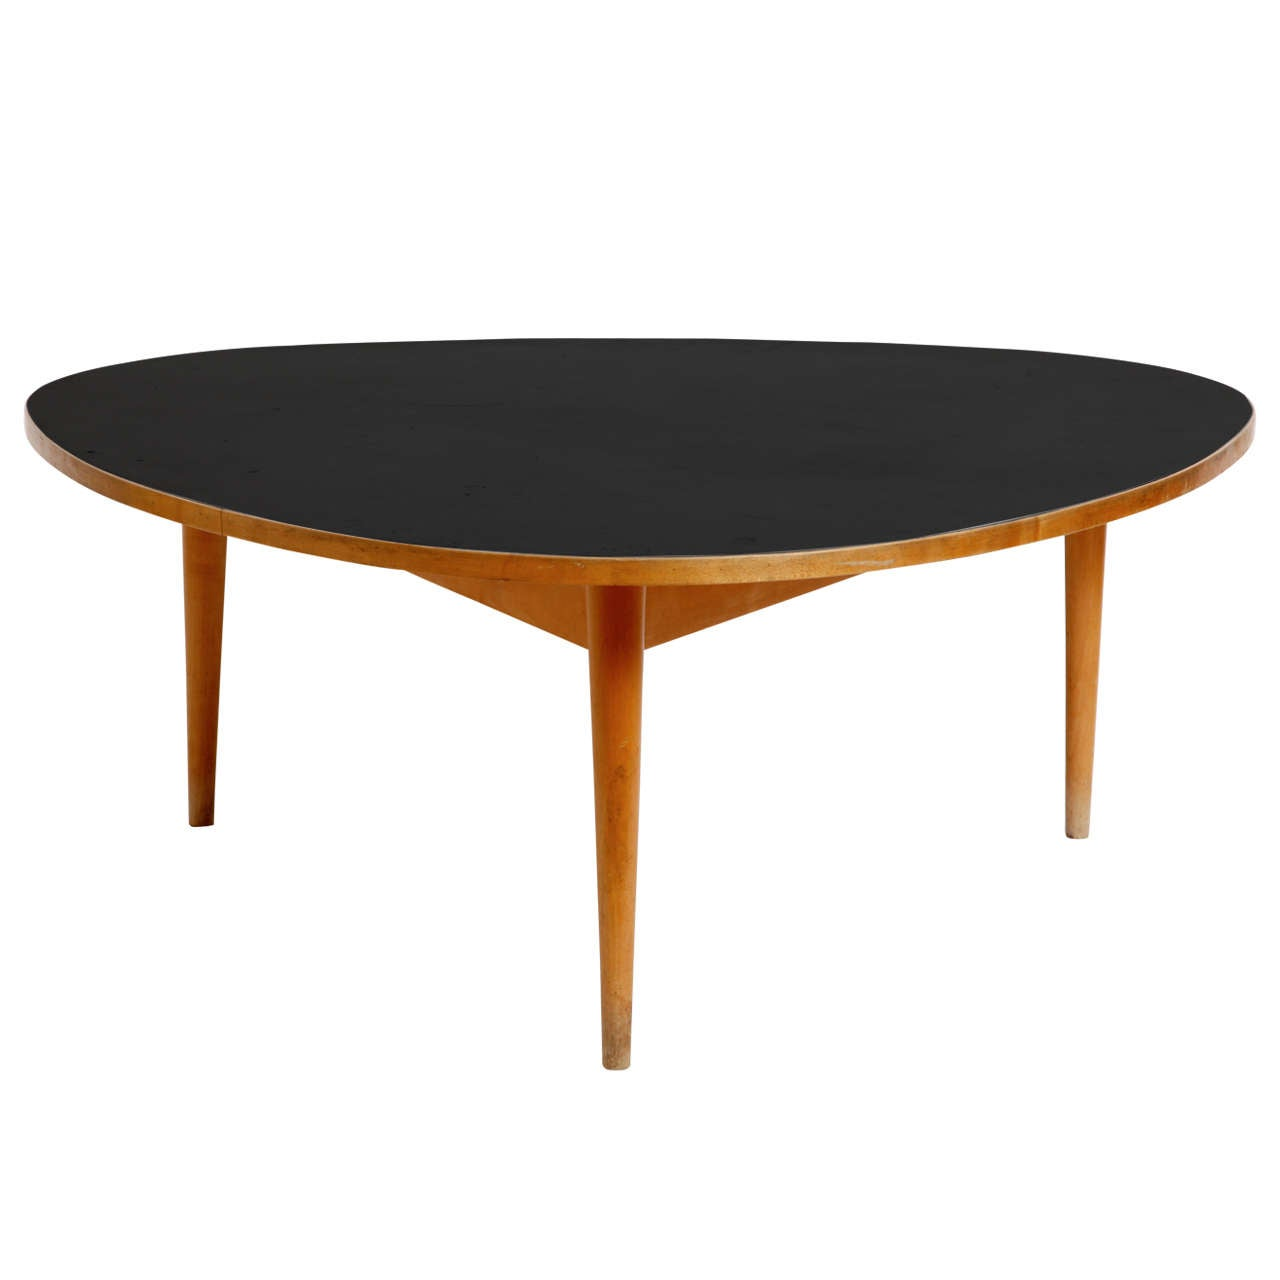 table by max bill at 1stdibs. Black Bedroom Furniture Sets. Home Design Ideas